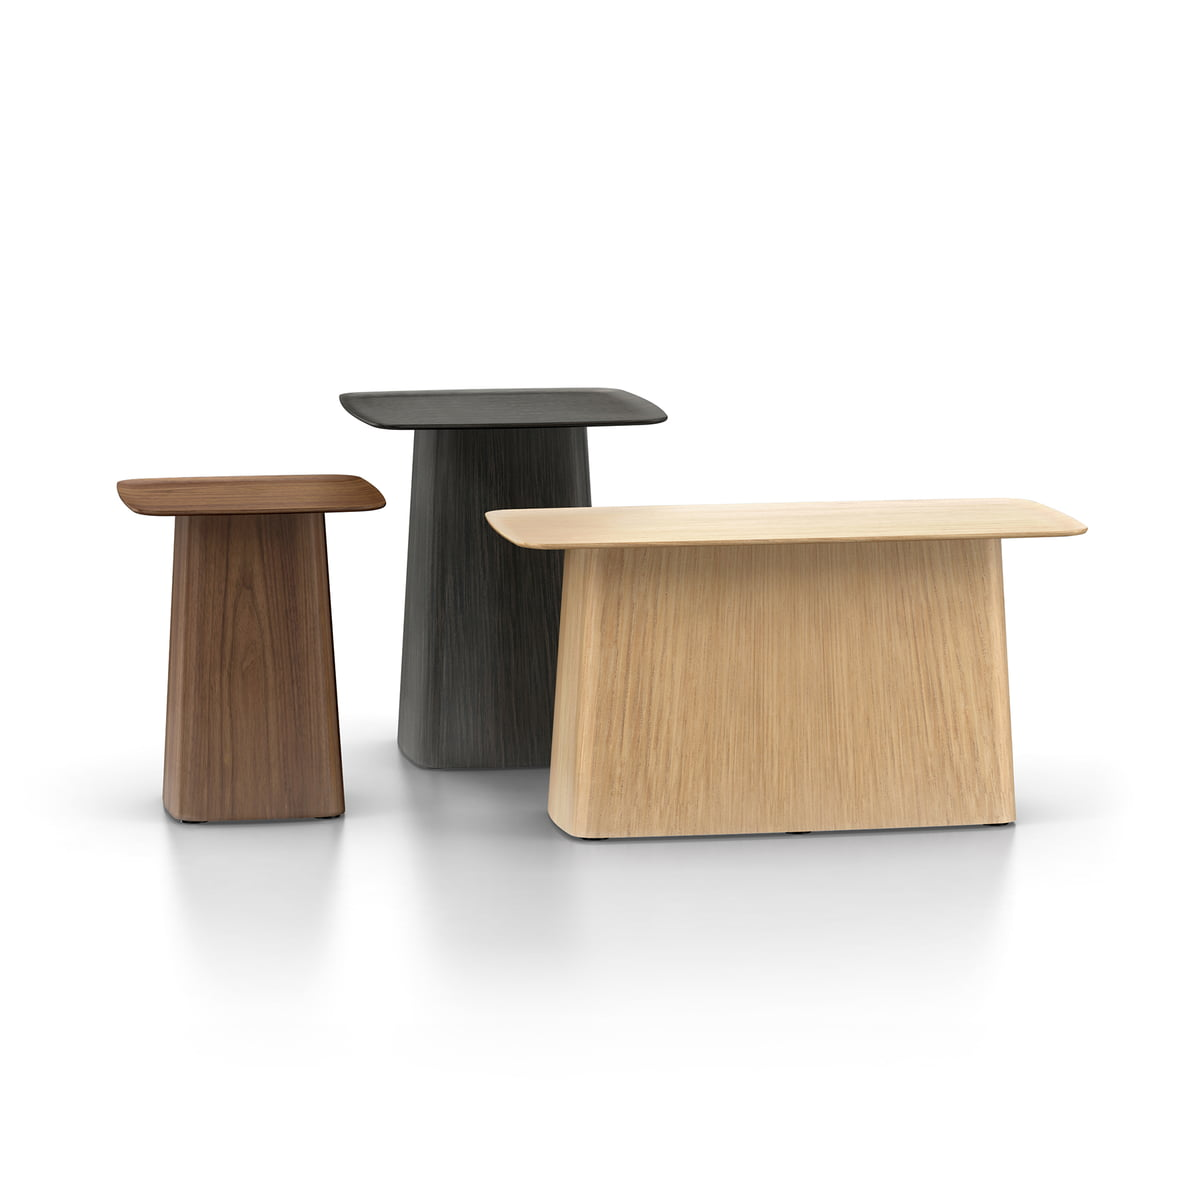 The Wooden Side Tables From Vitra